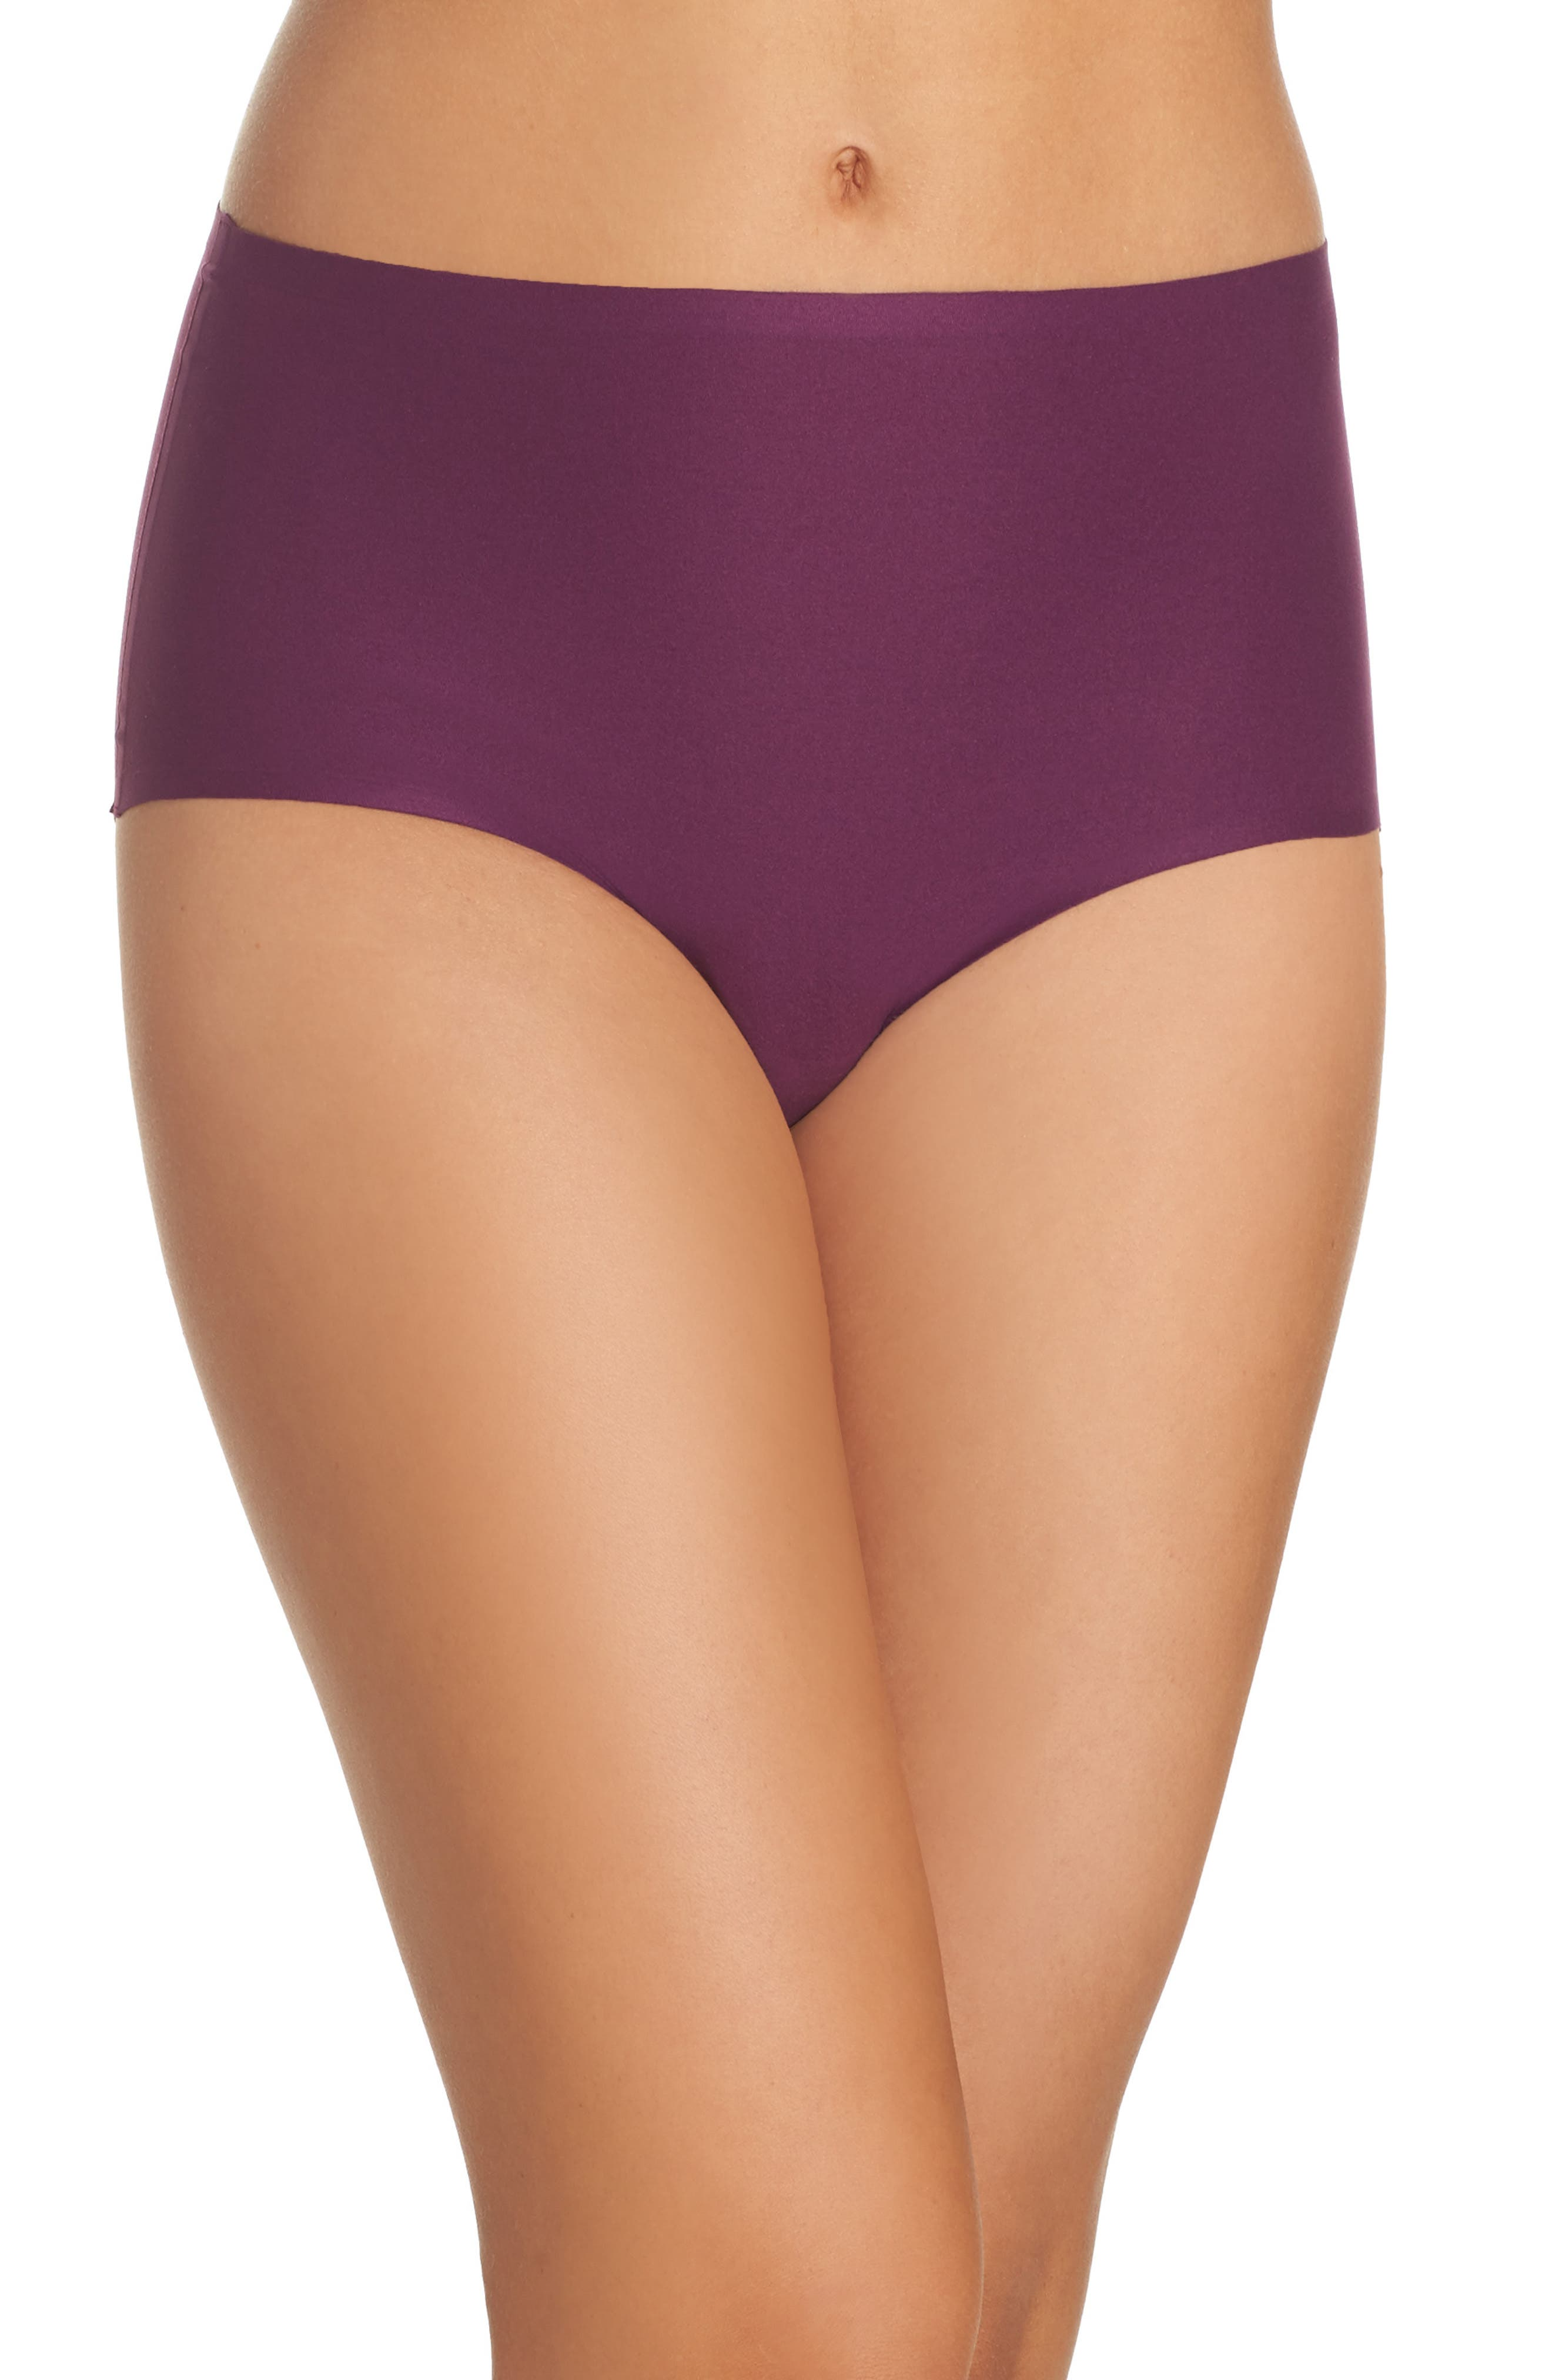 Alternate Image 1 Selected - Chantelle Intimates Soft Stretch High Waist Seamless Briefs (3 for $45)